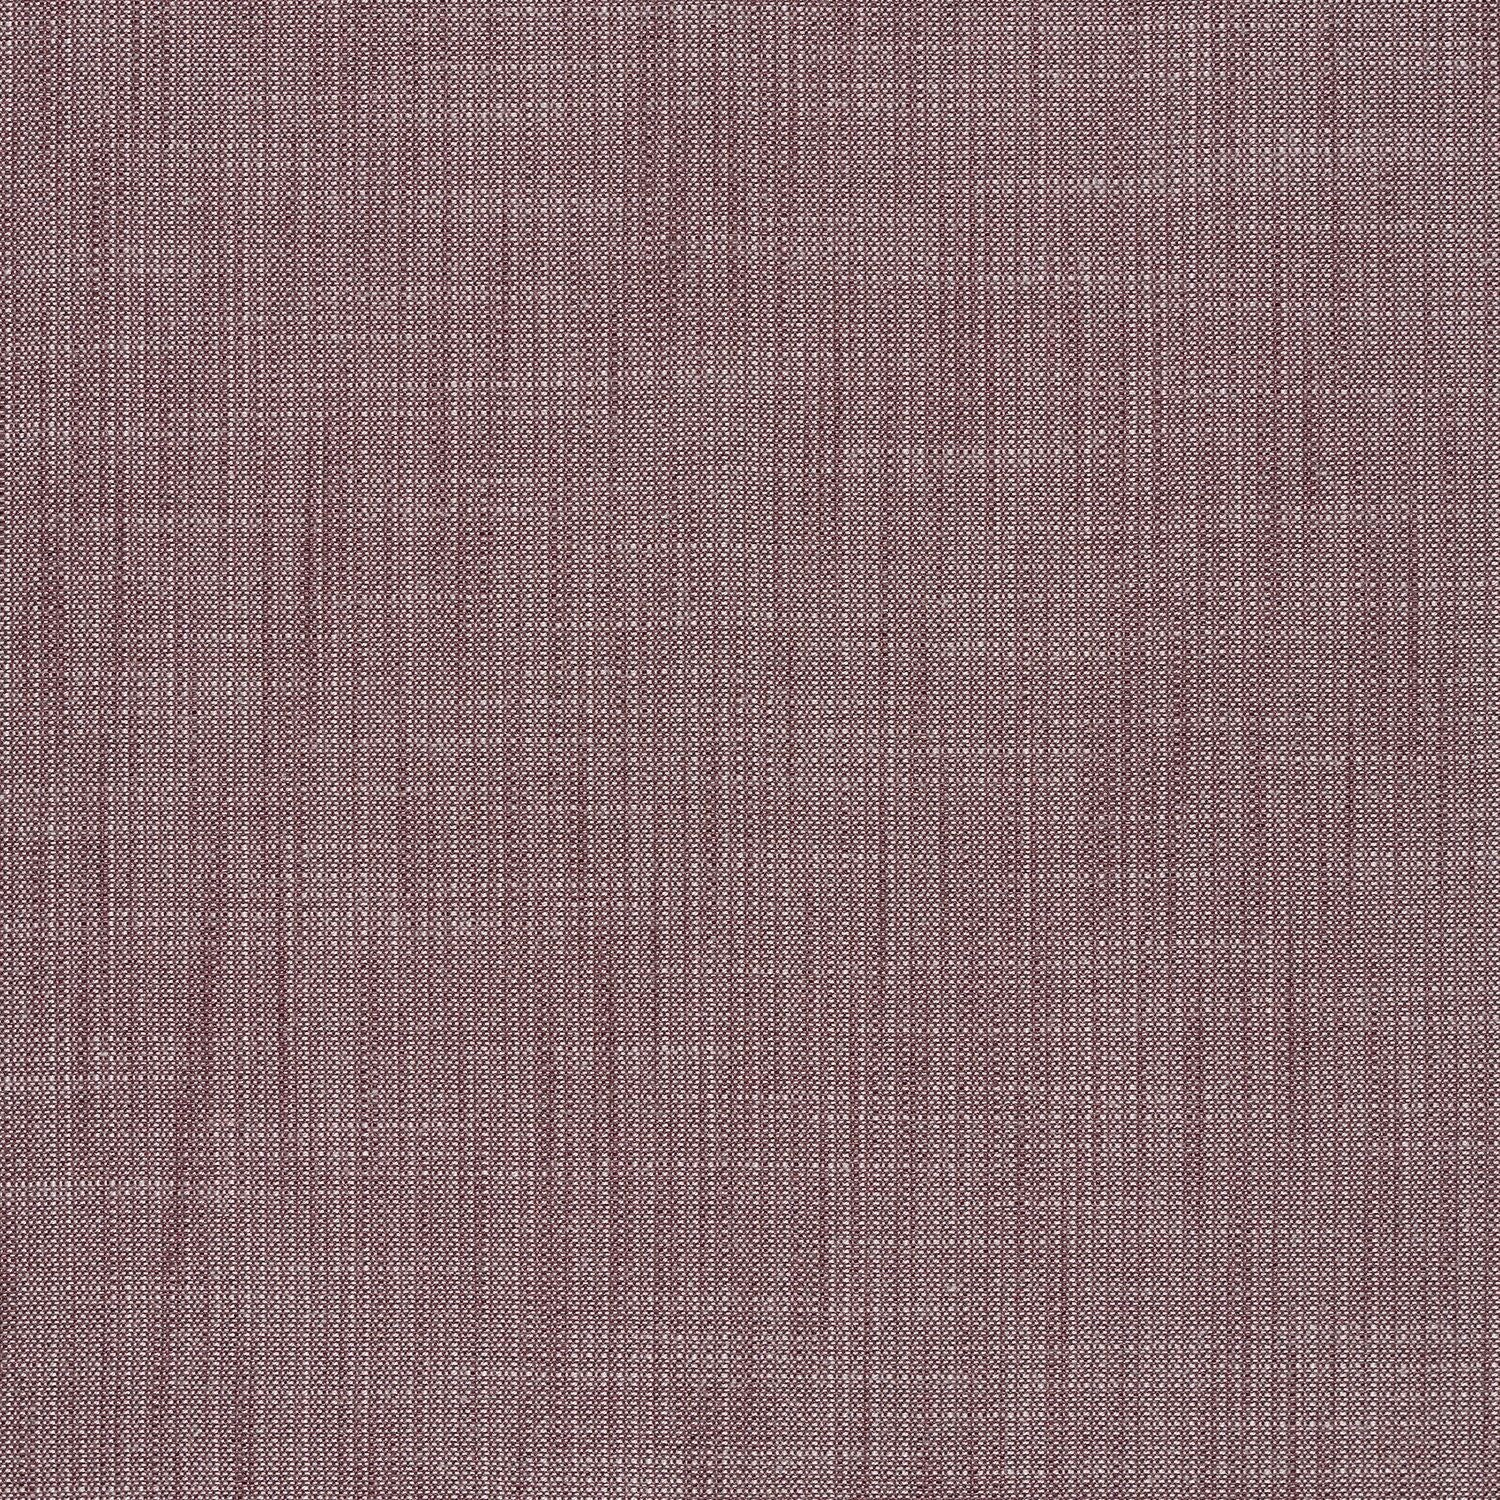 Dusty Plum|4076-17-D146|Dusty Plum 4076-17-D146